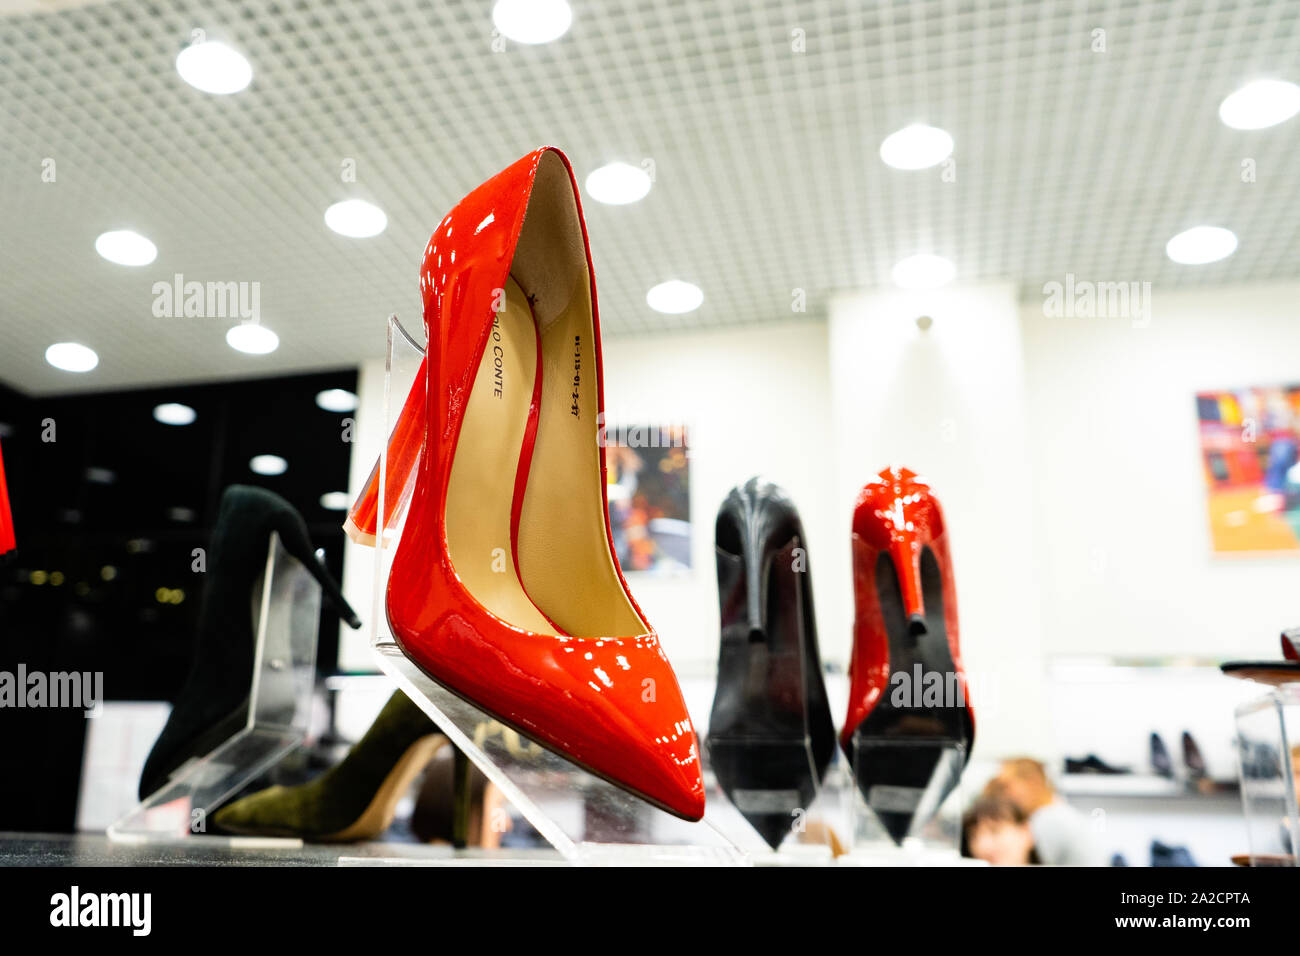 Red High Heeled Shoes Immagini e Fotos Stock Alamy